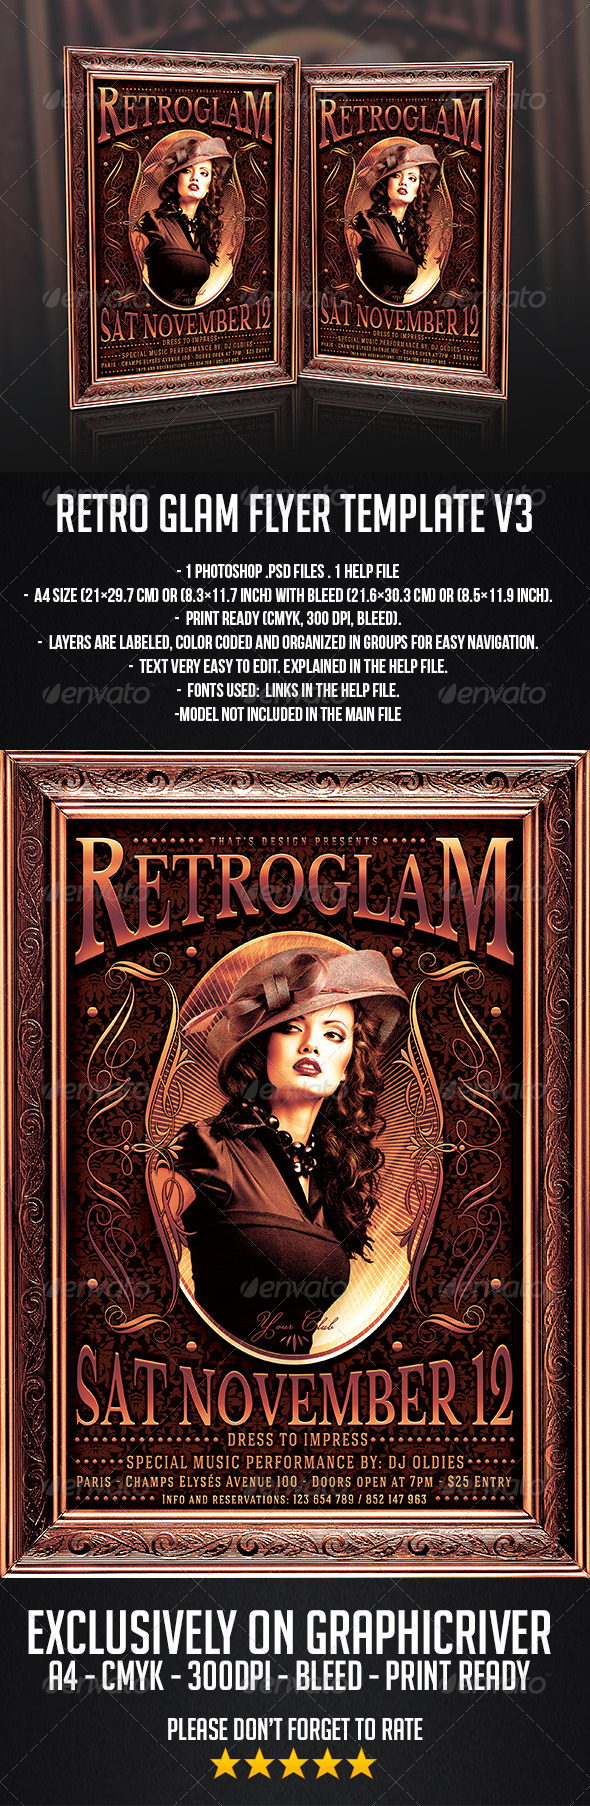 GraphicRiver Retro Glam Flyer Template V3 7683259